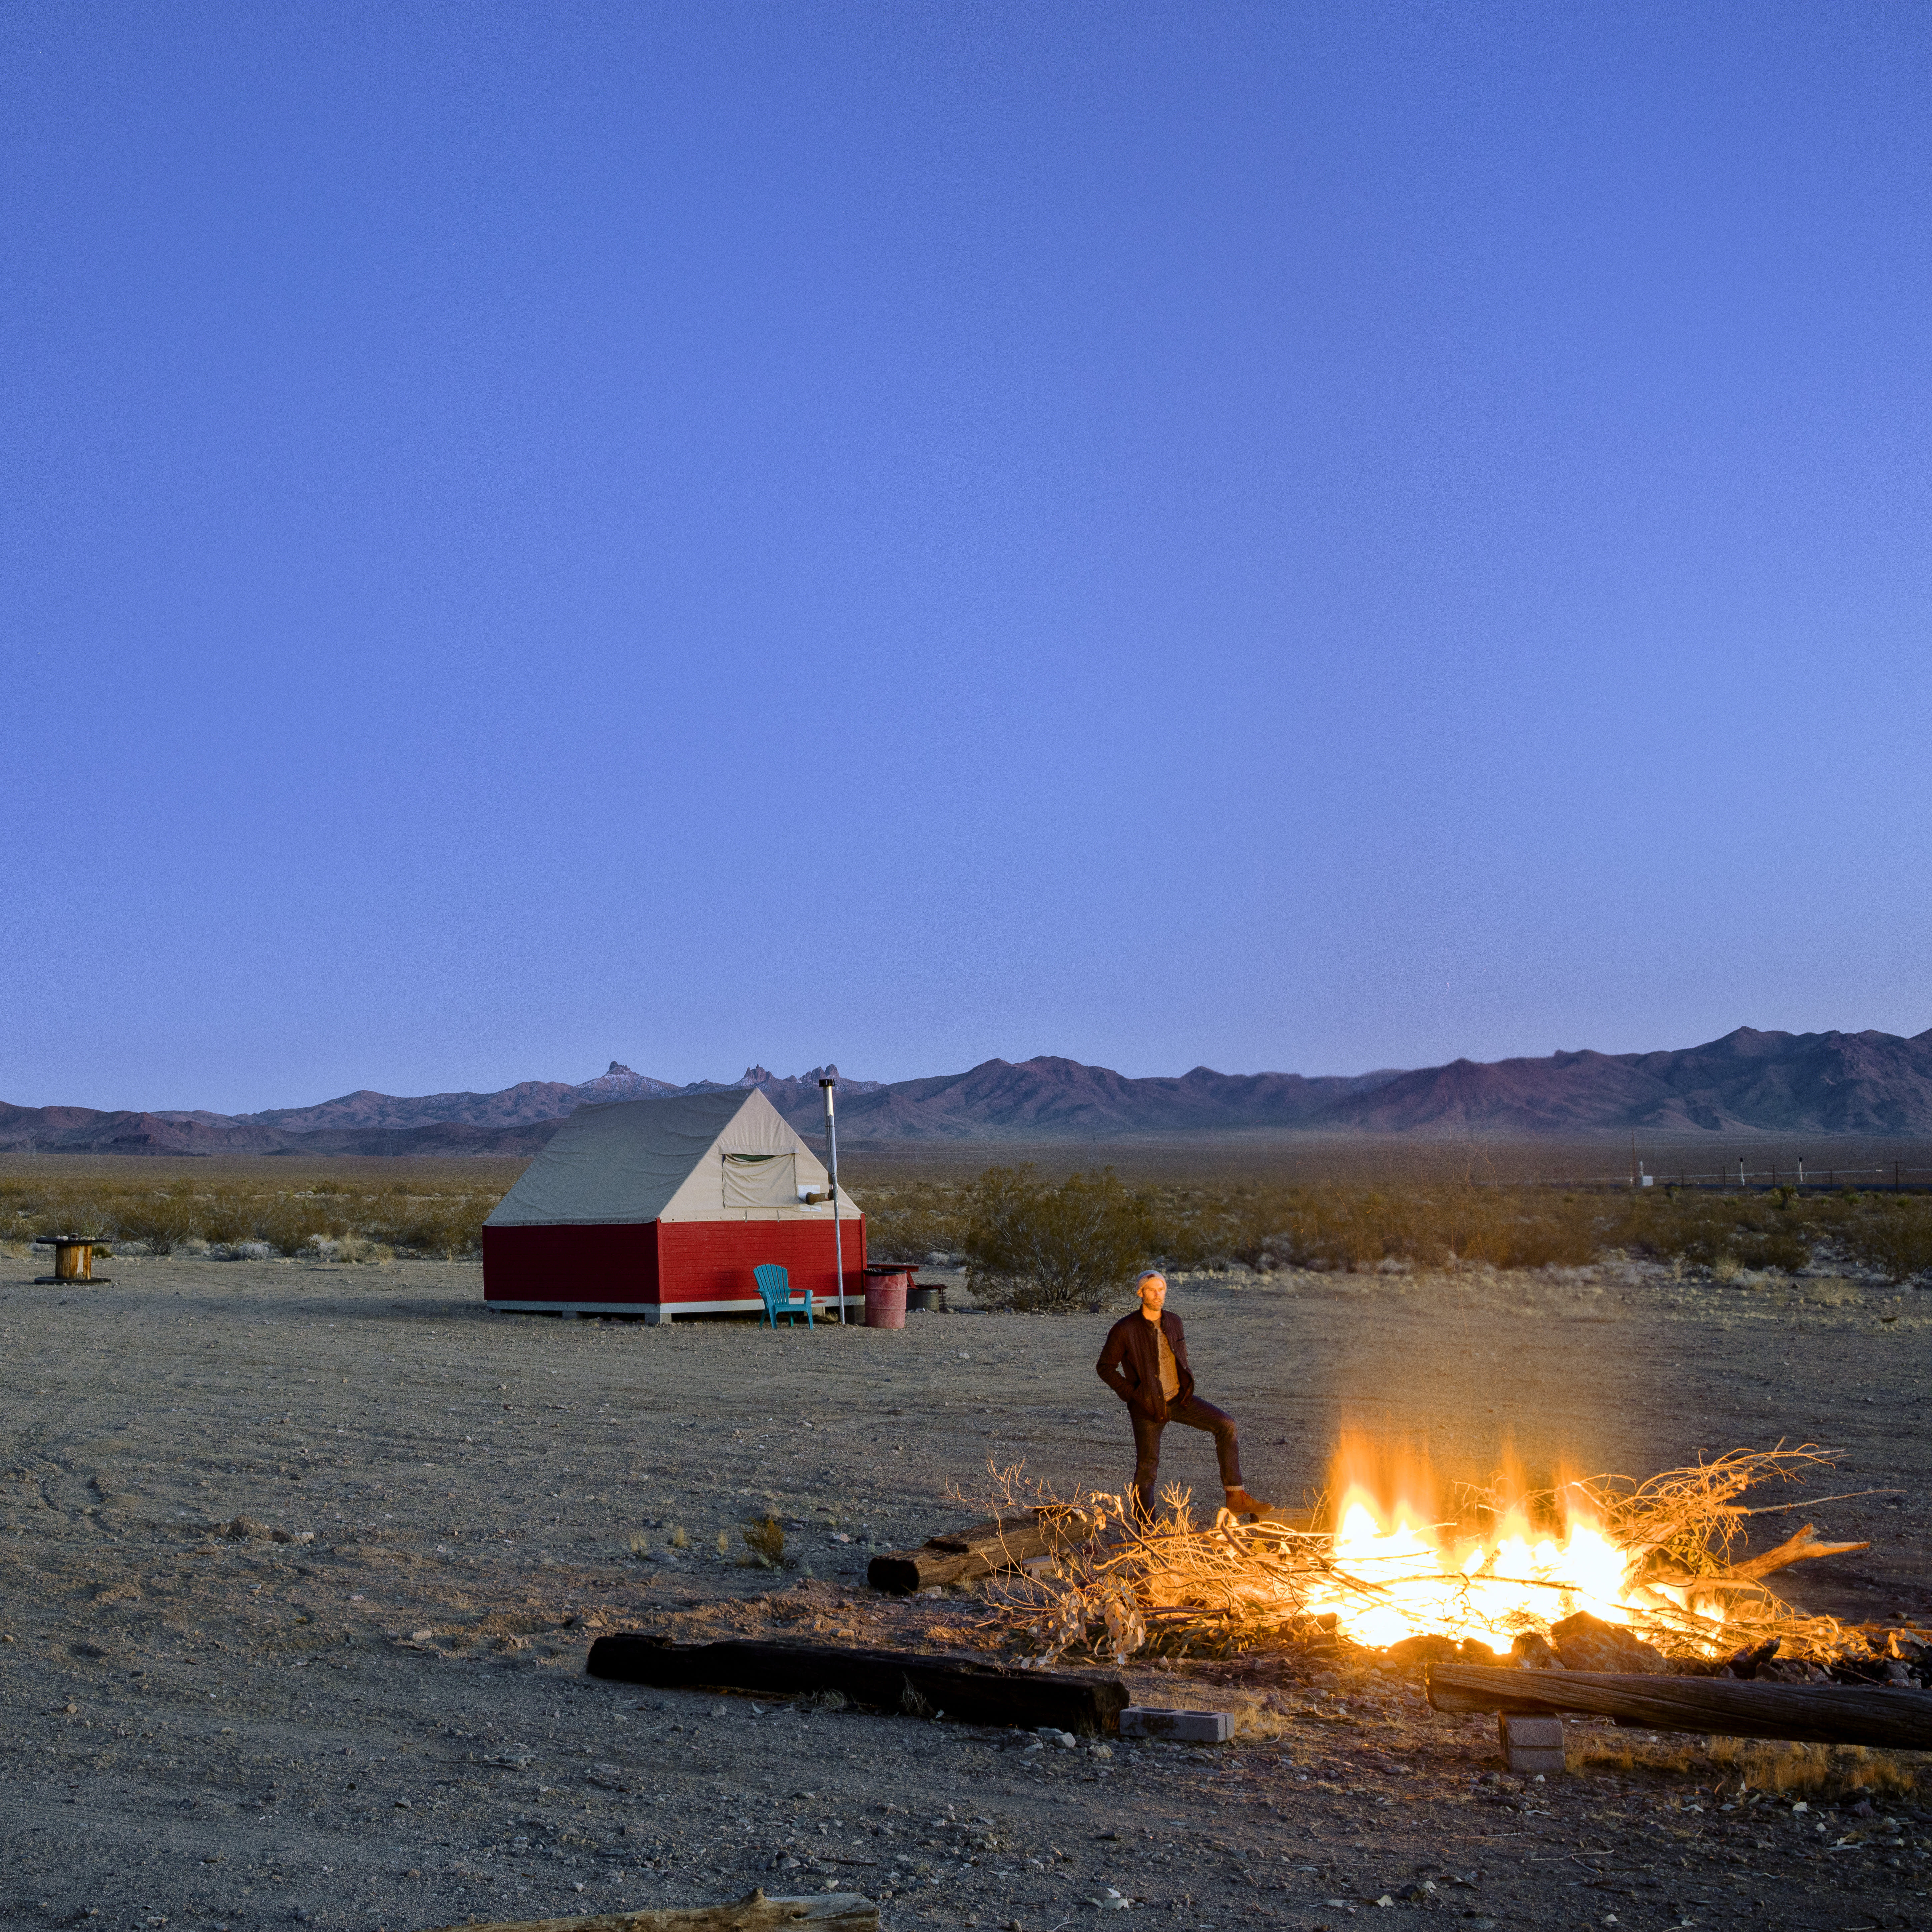 """Mojave Desert Native Plants: Got $5 Million? You Could Own This Sustainable """"ghost Town"""